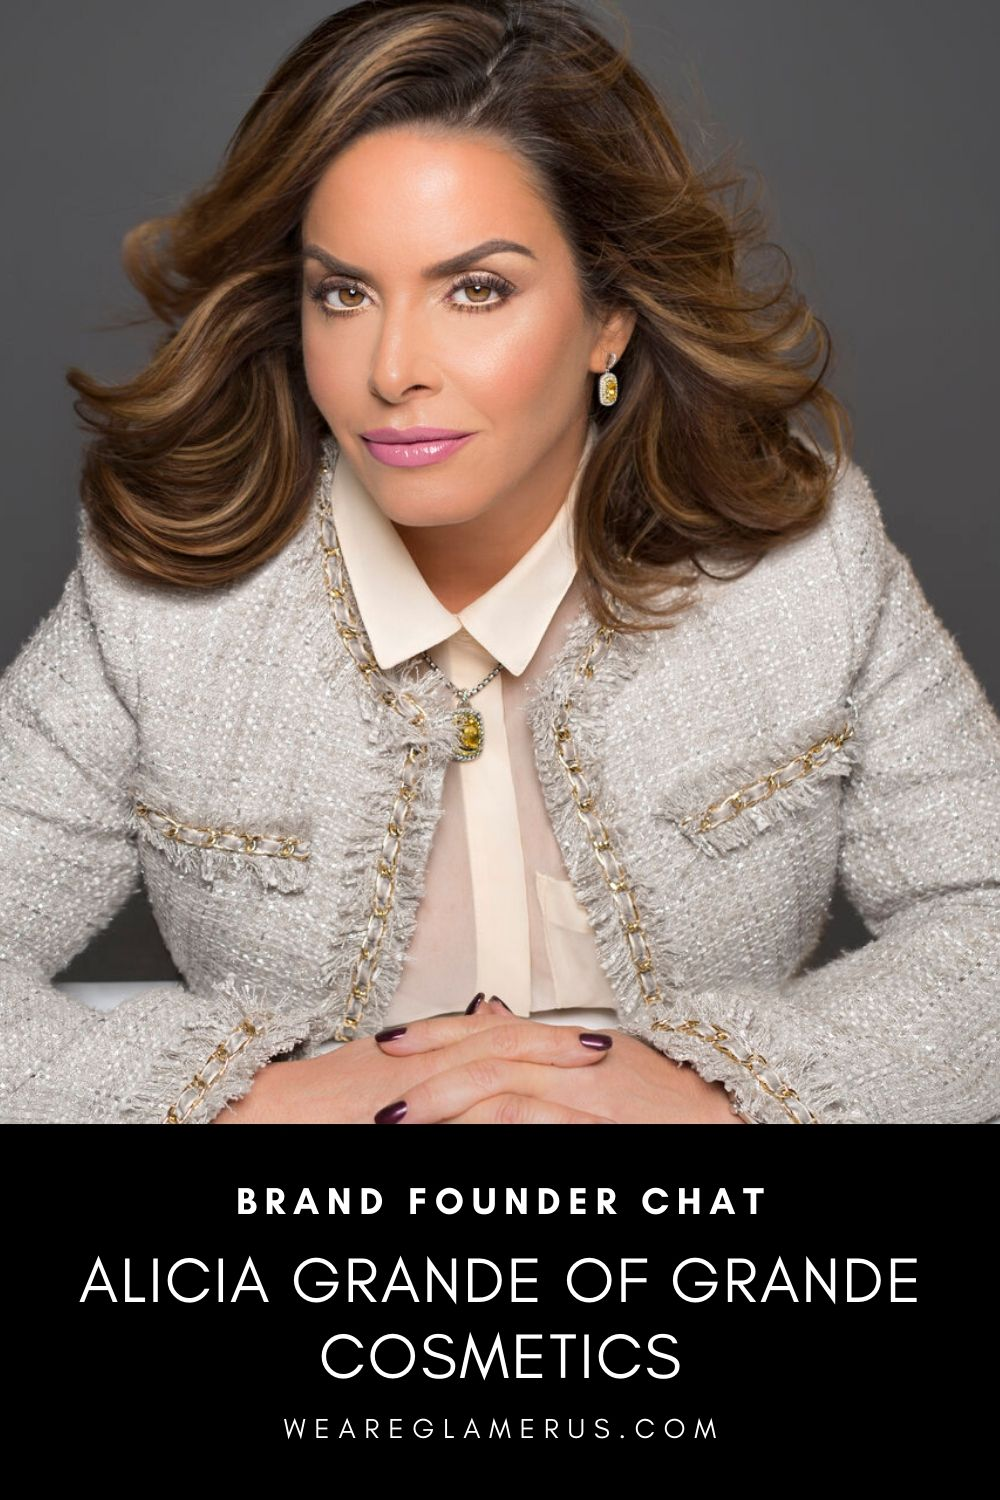 Check out my latest brand founder chat in today's post!